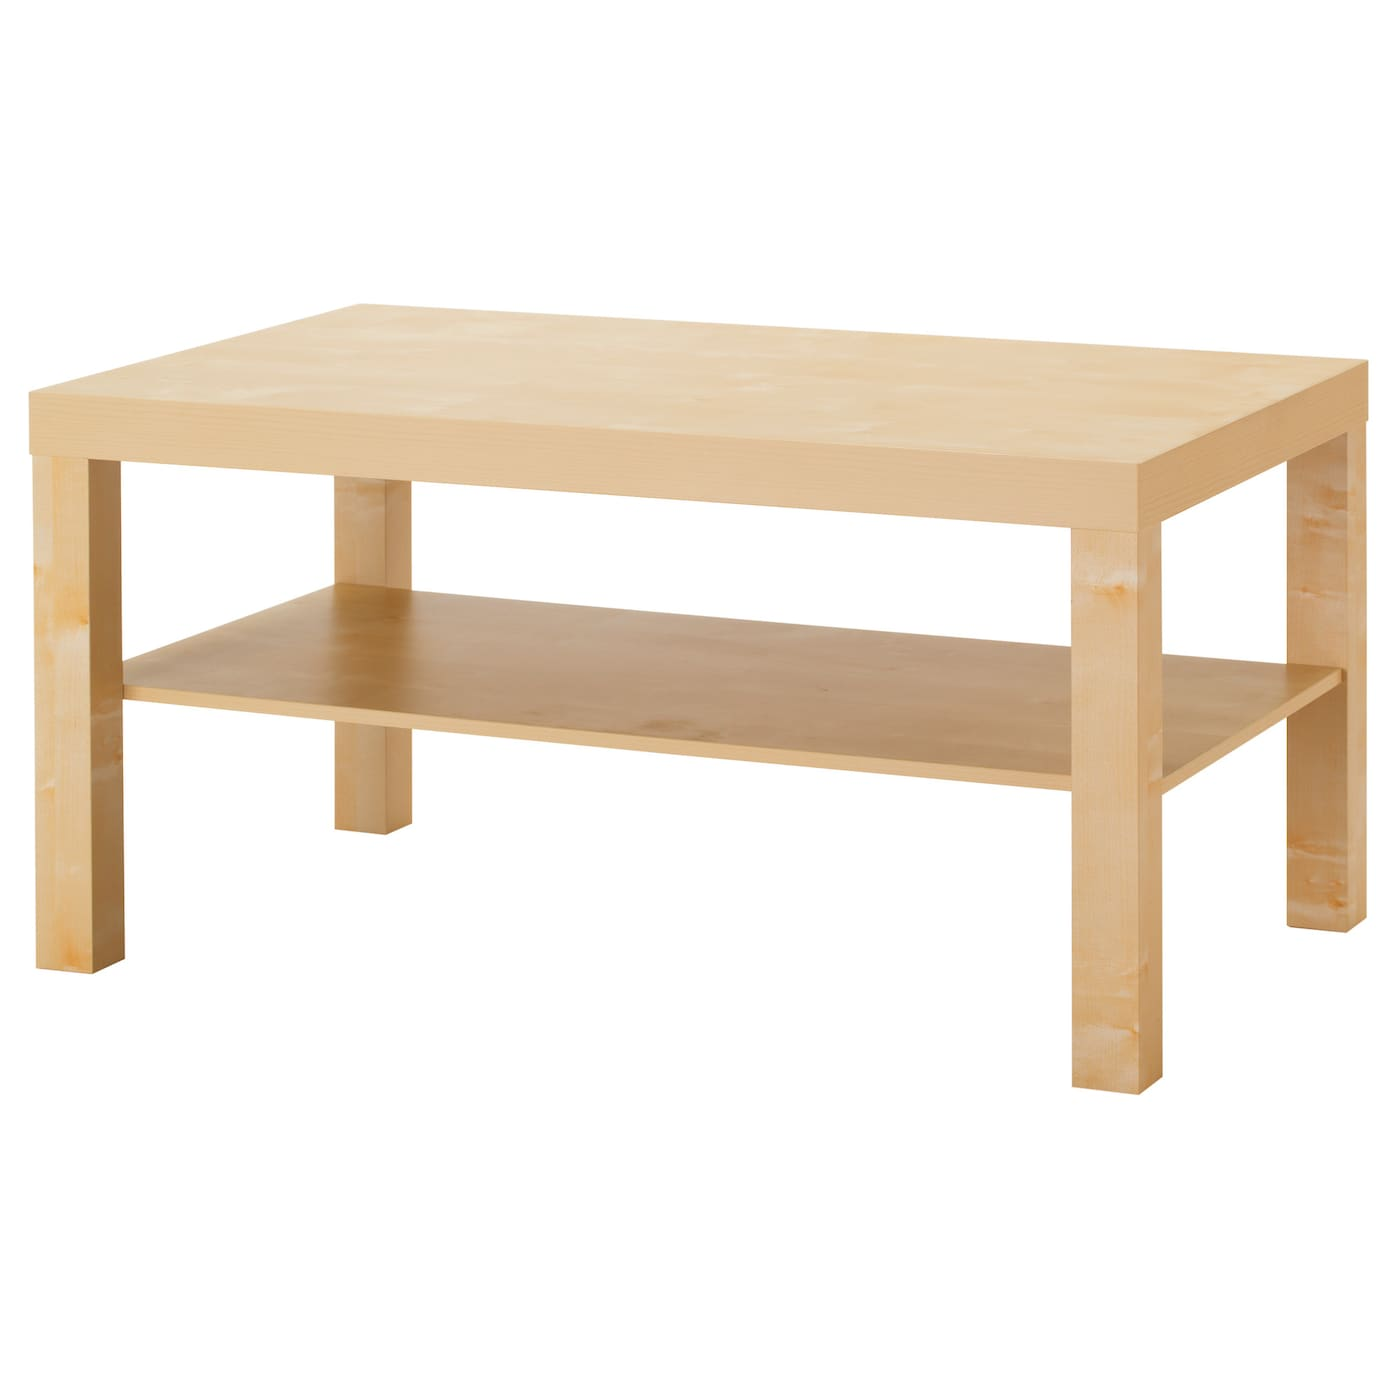 Lack coffee table birch effect 90x55 cm ikea - Petite table de salon ikea ...